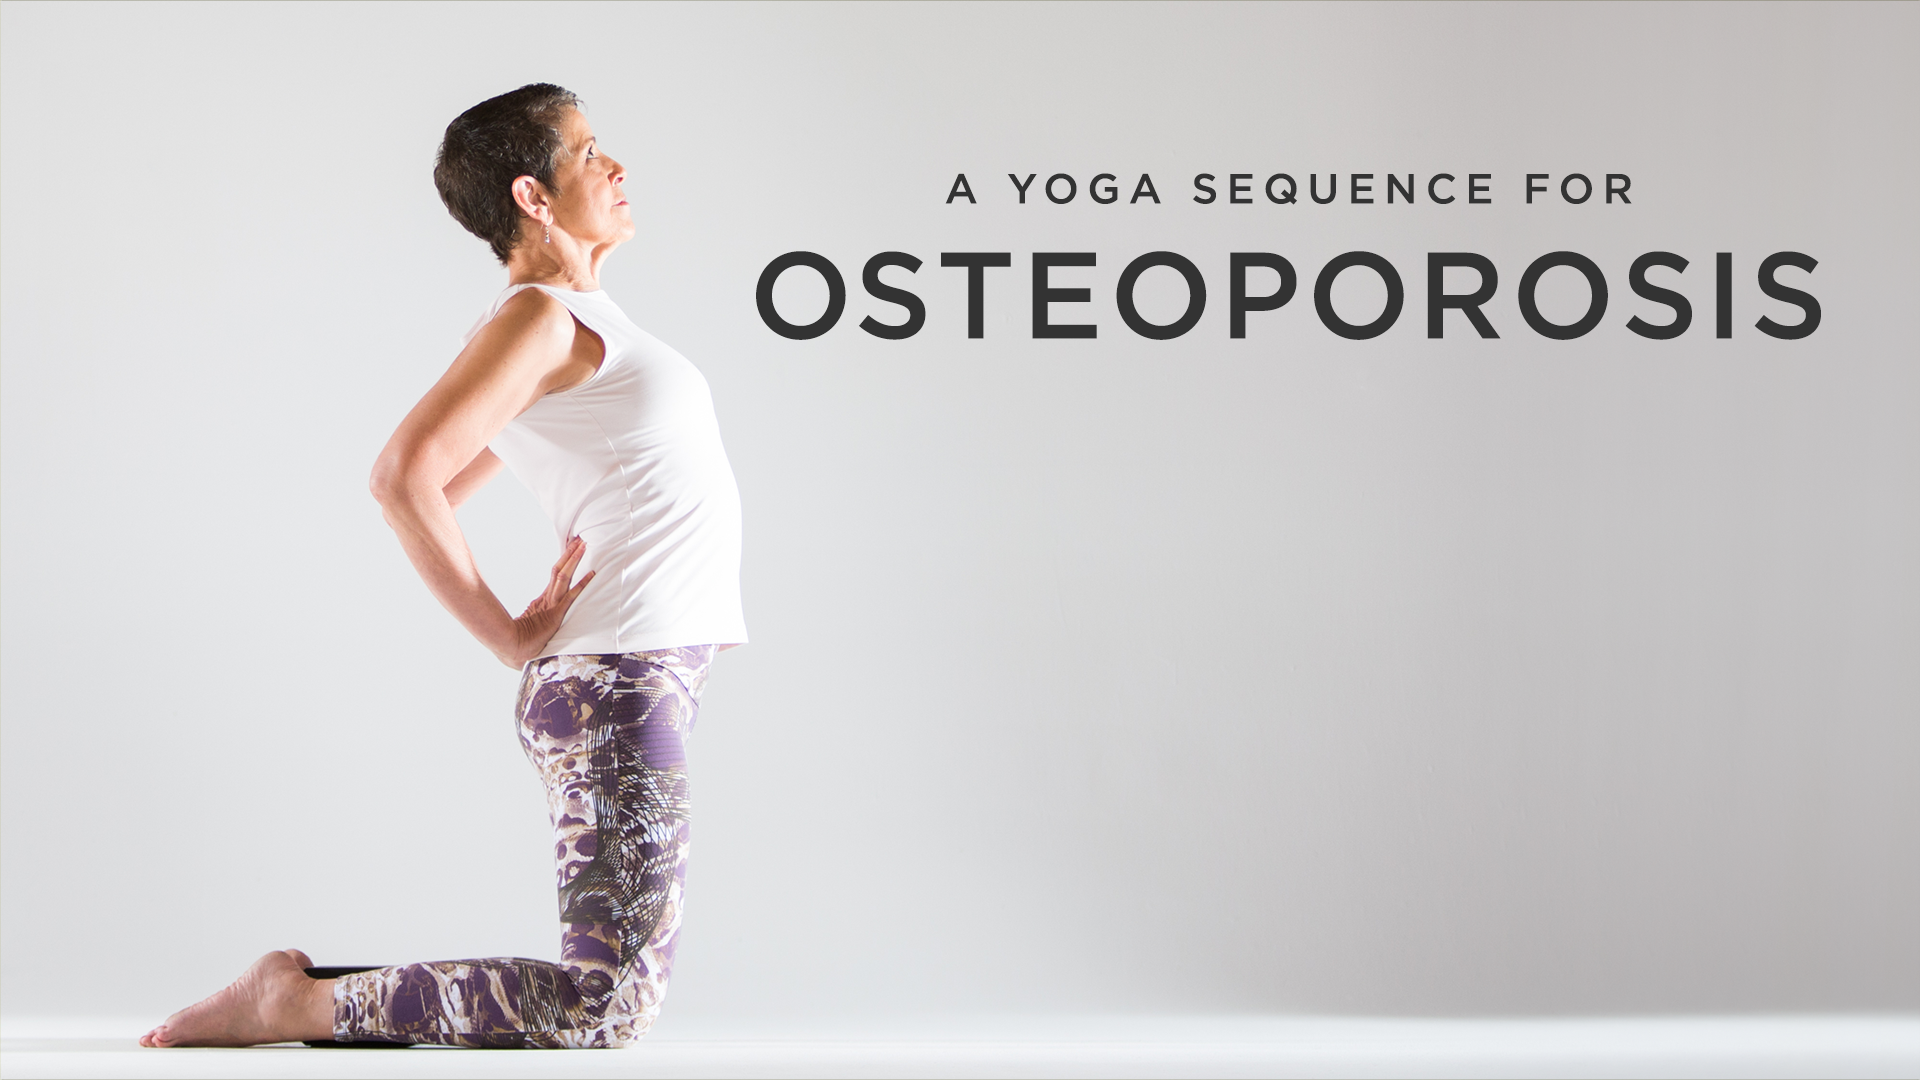 A Yoga Sequence For Osteoporosis Yoga International